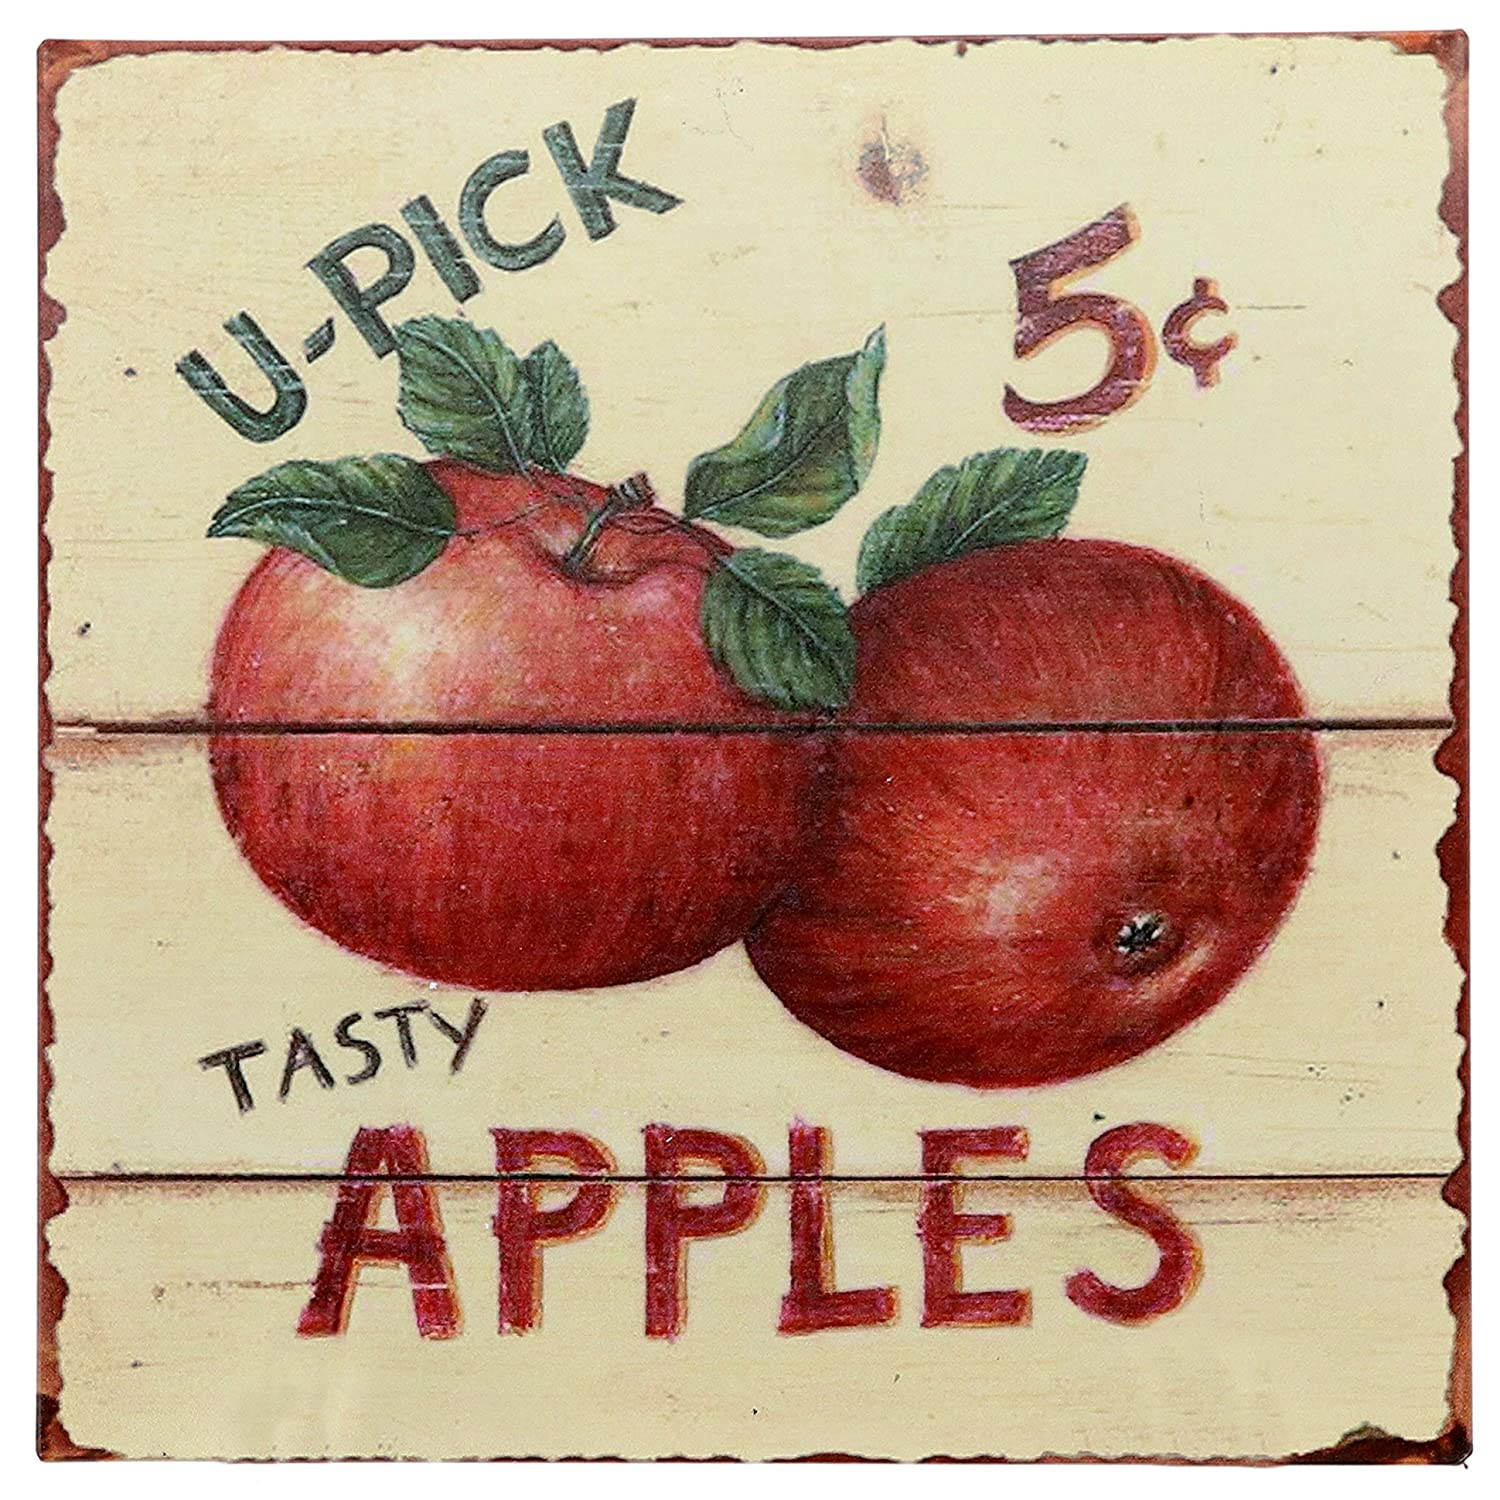 "Barnyard Designs Tasty Apples 5 Cents Retro Vintage Tin Bar Sign Country Home Decor 11"" x 11"""